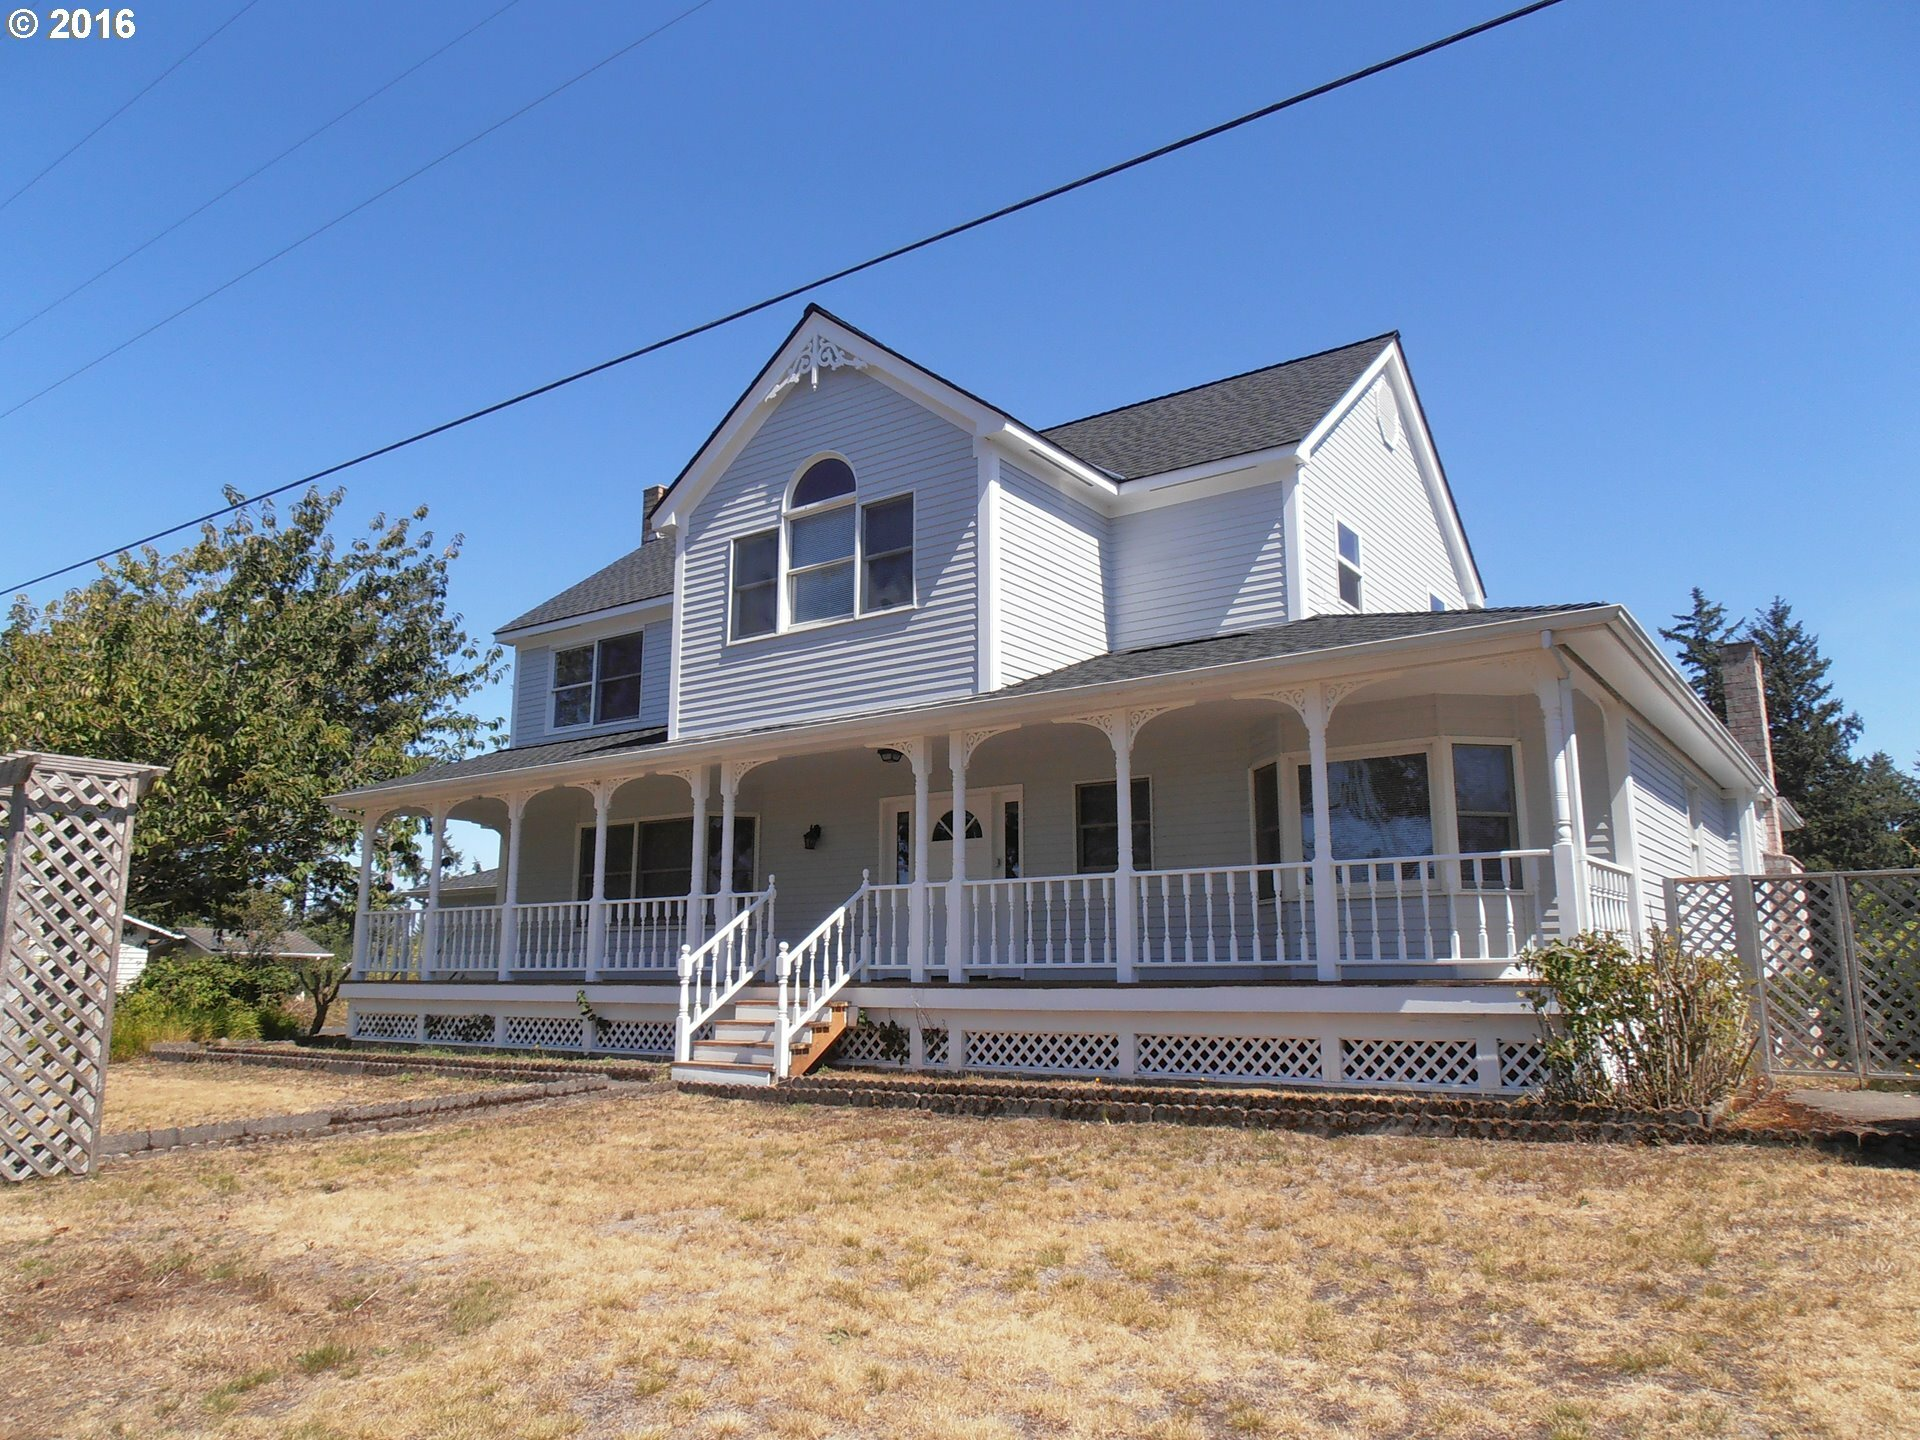 867 Cottage Ave, Gearhart, OR - USA (photo 1)